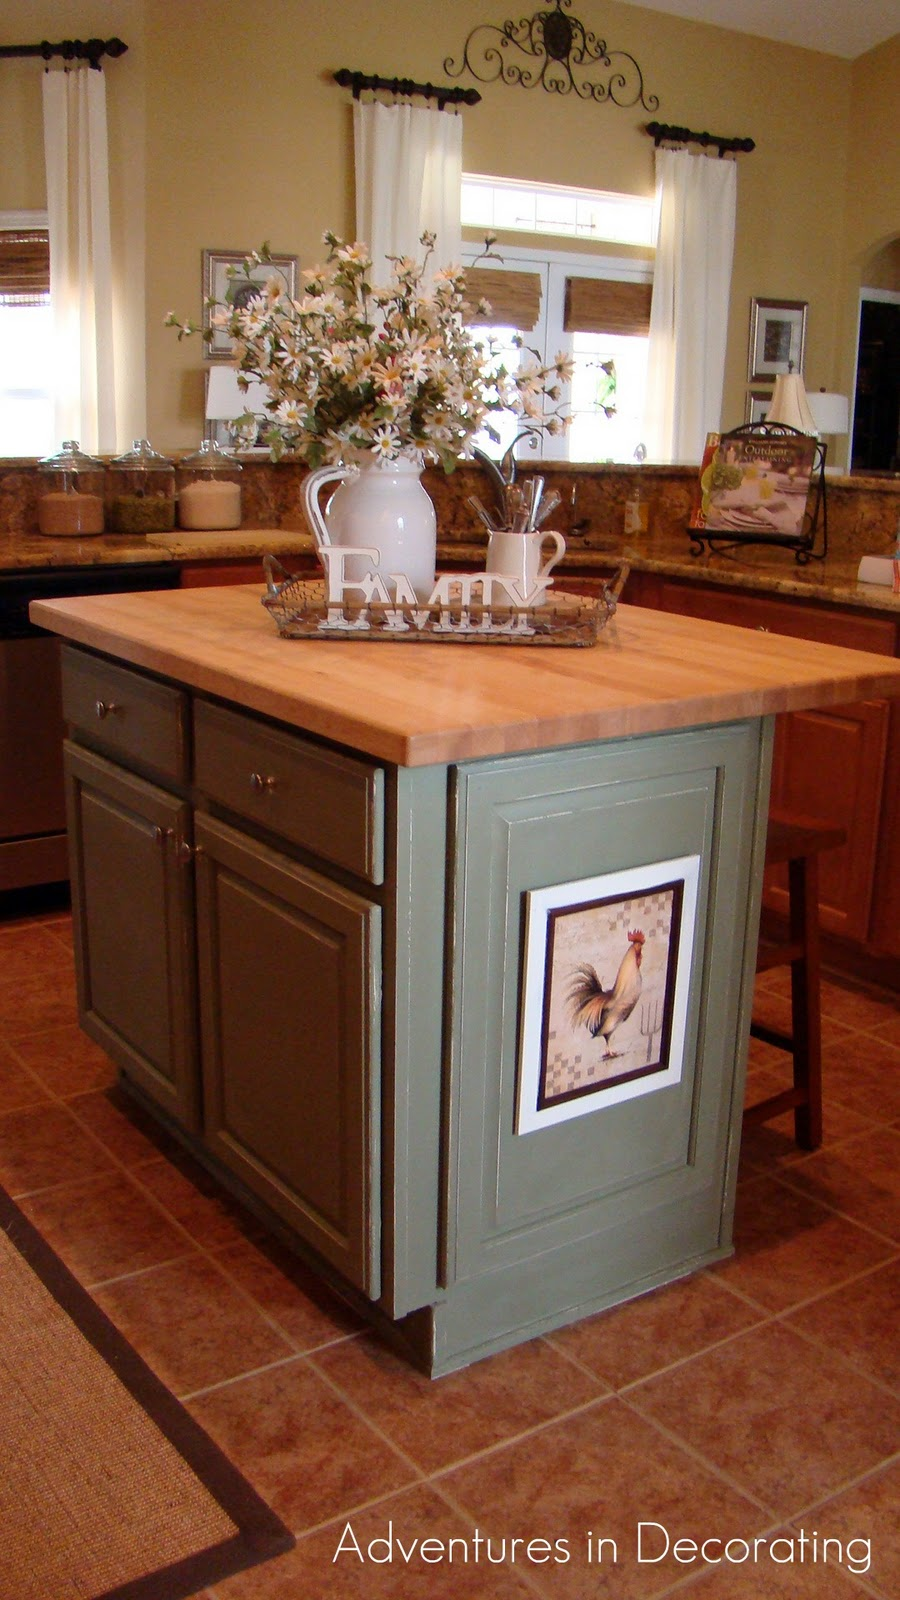 Adventures in decorating an affair with paint - How to decorate a kitchen island ...